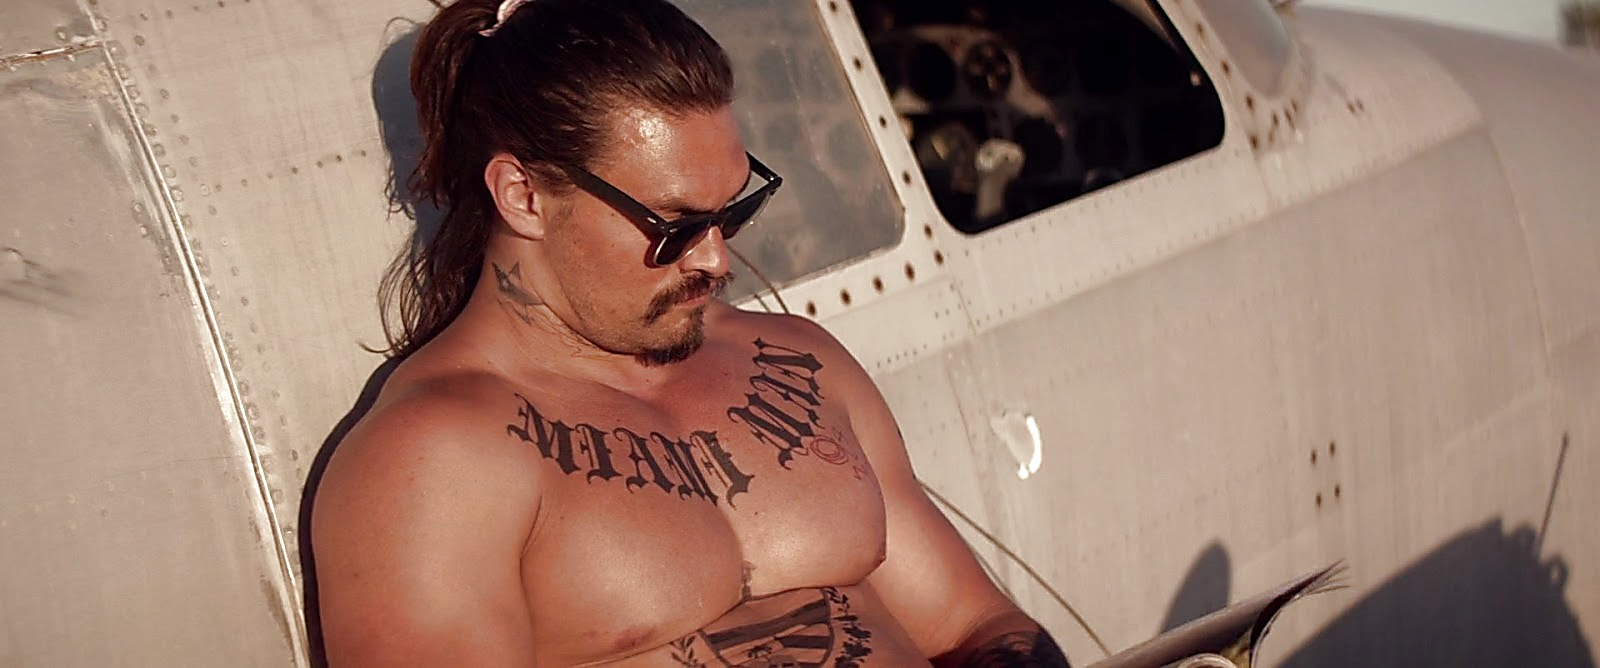 Jason Momoa The Bad Batch 2017 06 23 5jpg